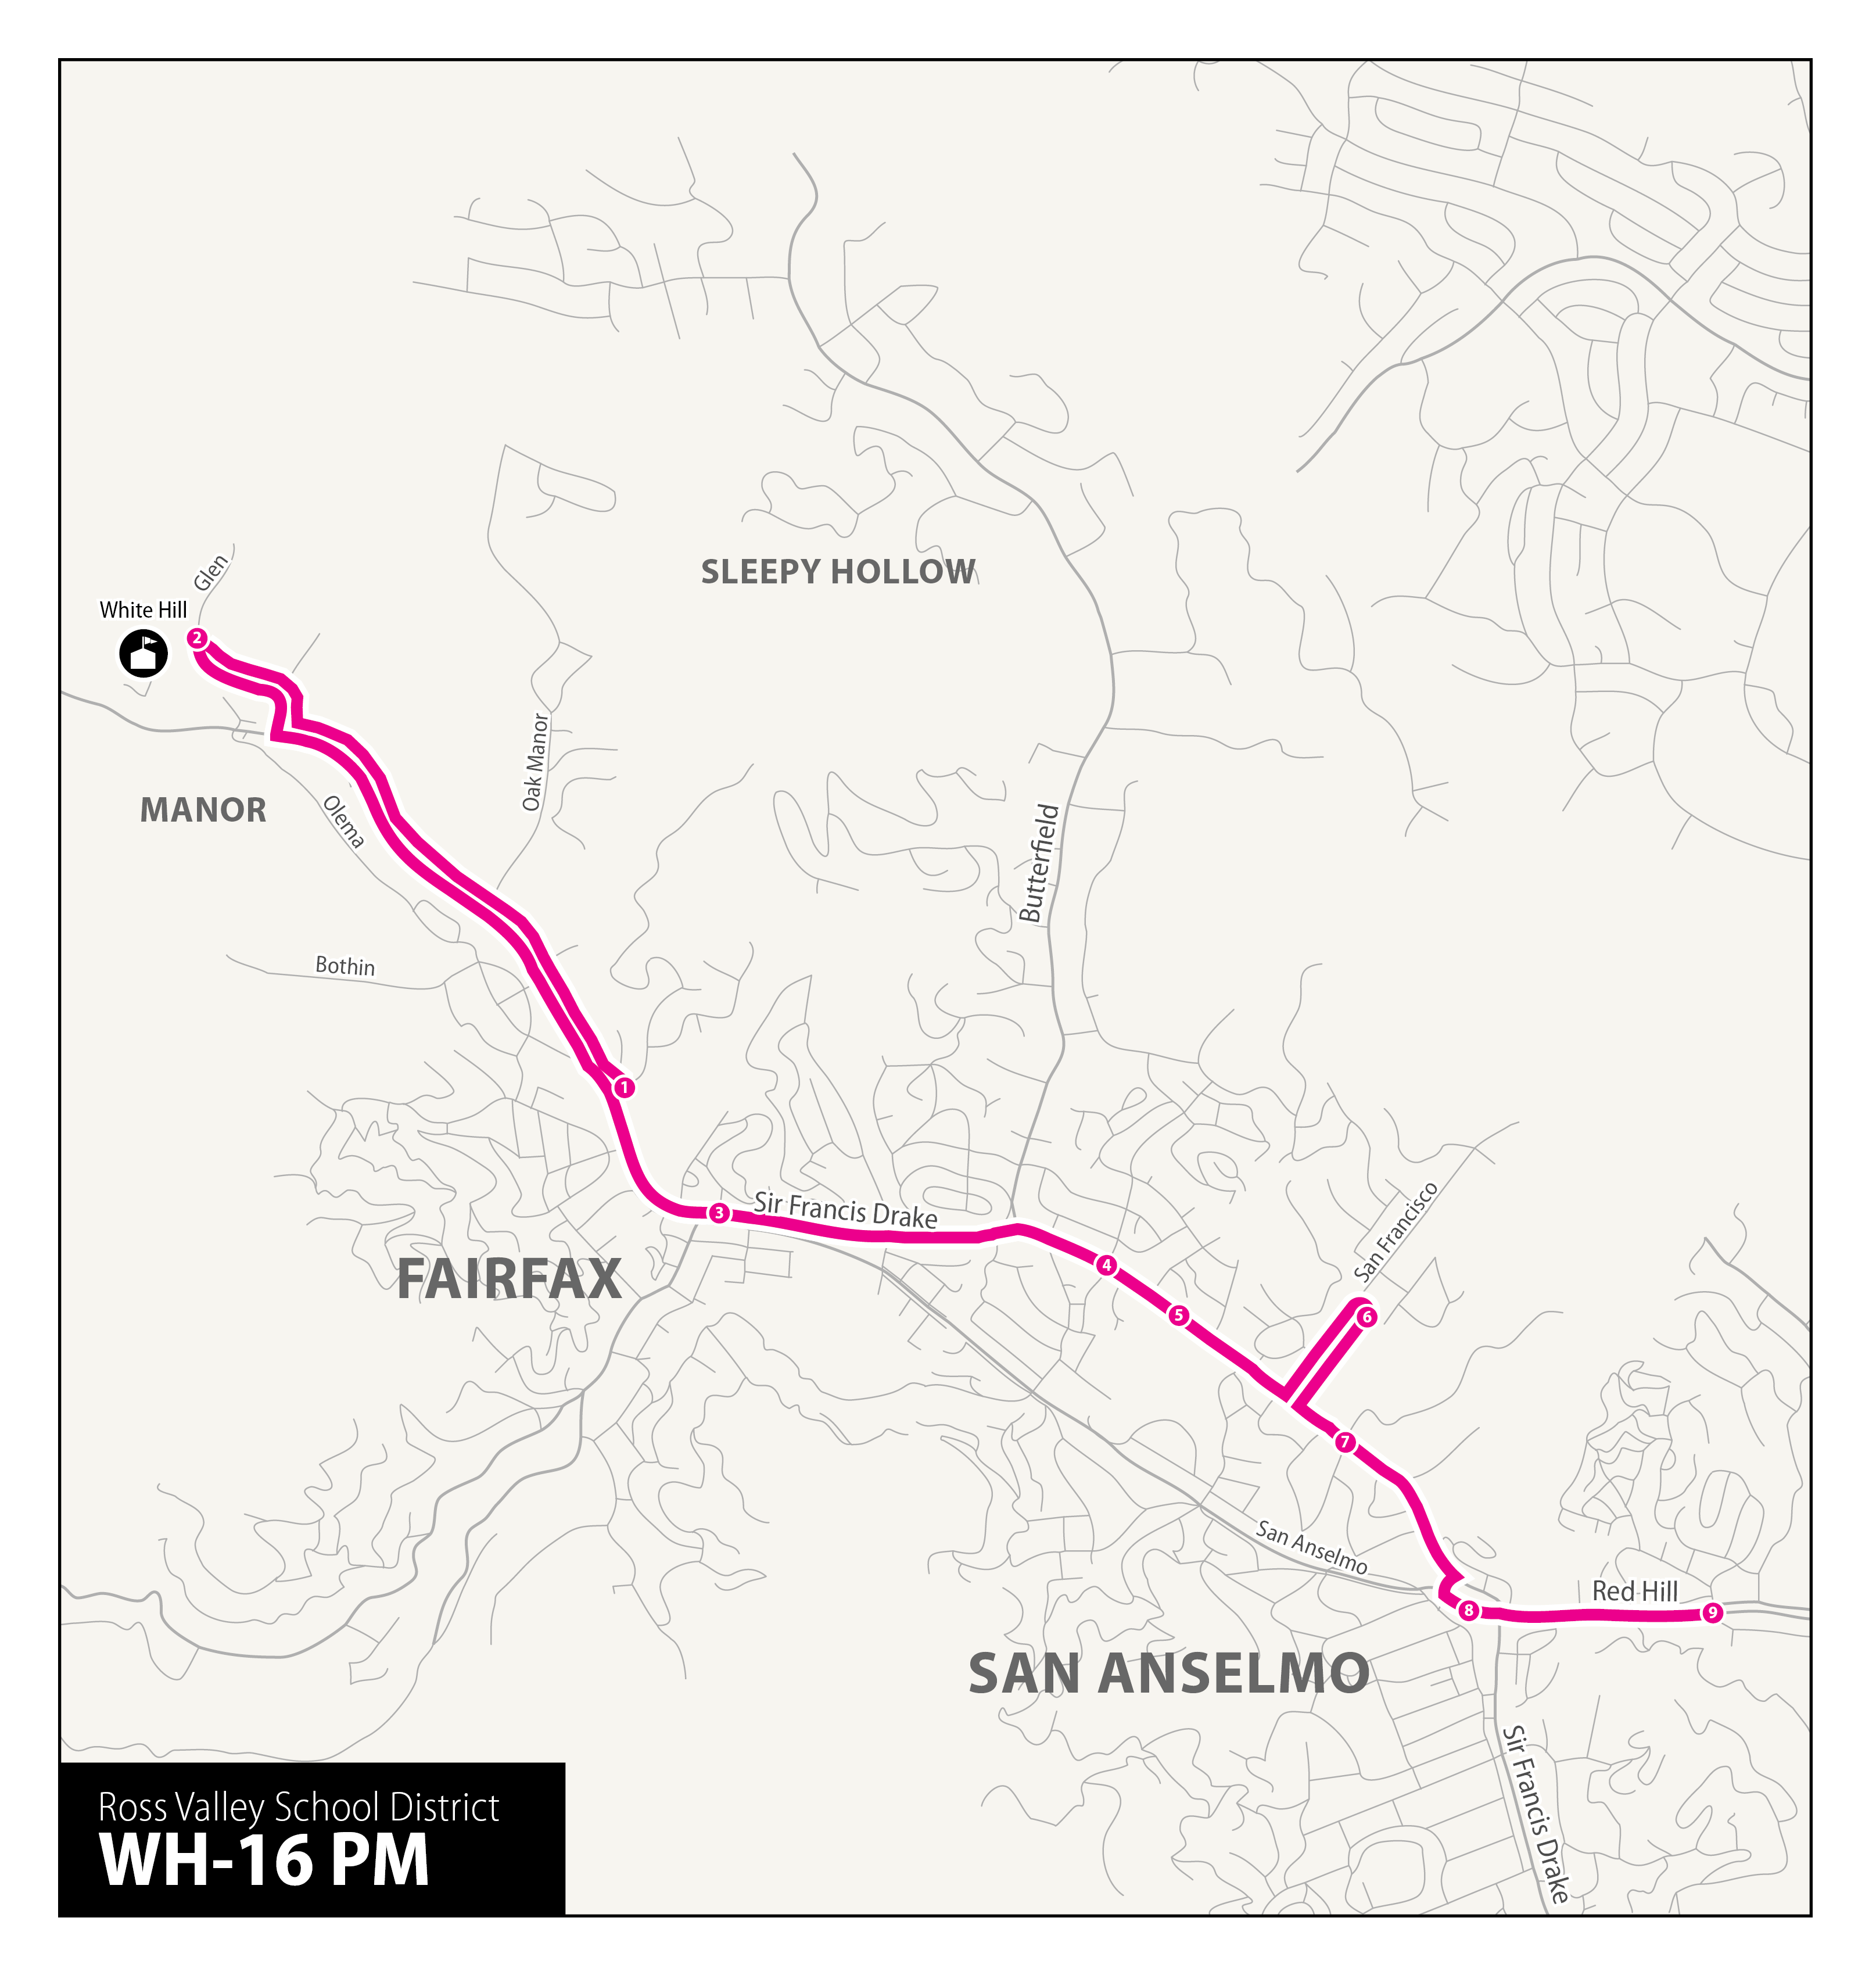 Ross Valley Charter Yellow Bus Service afternoon route through Fairfax and San Anselmo